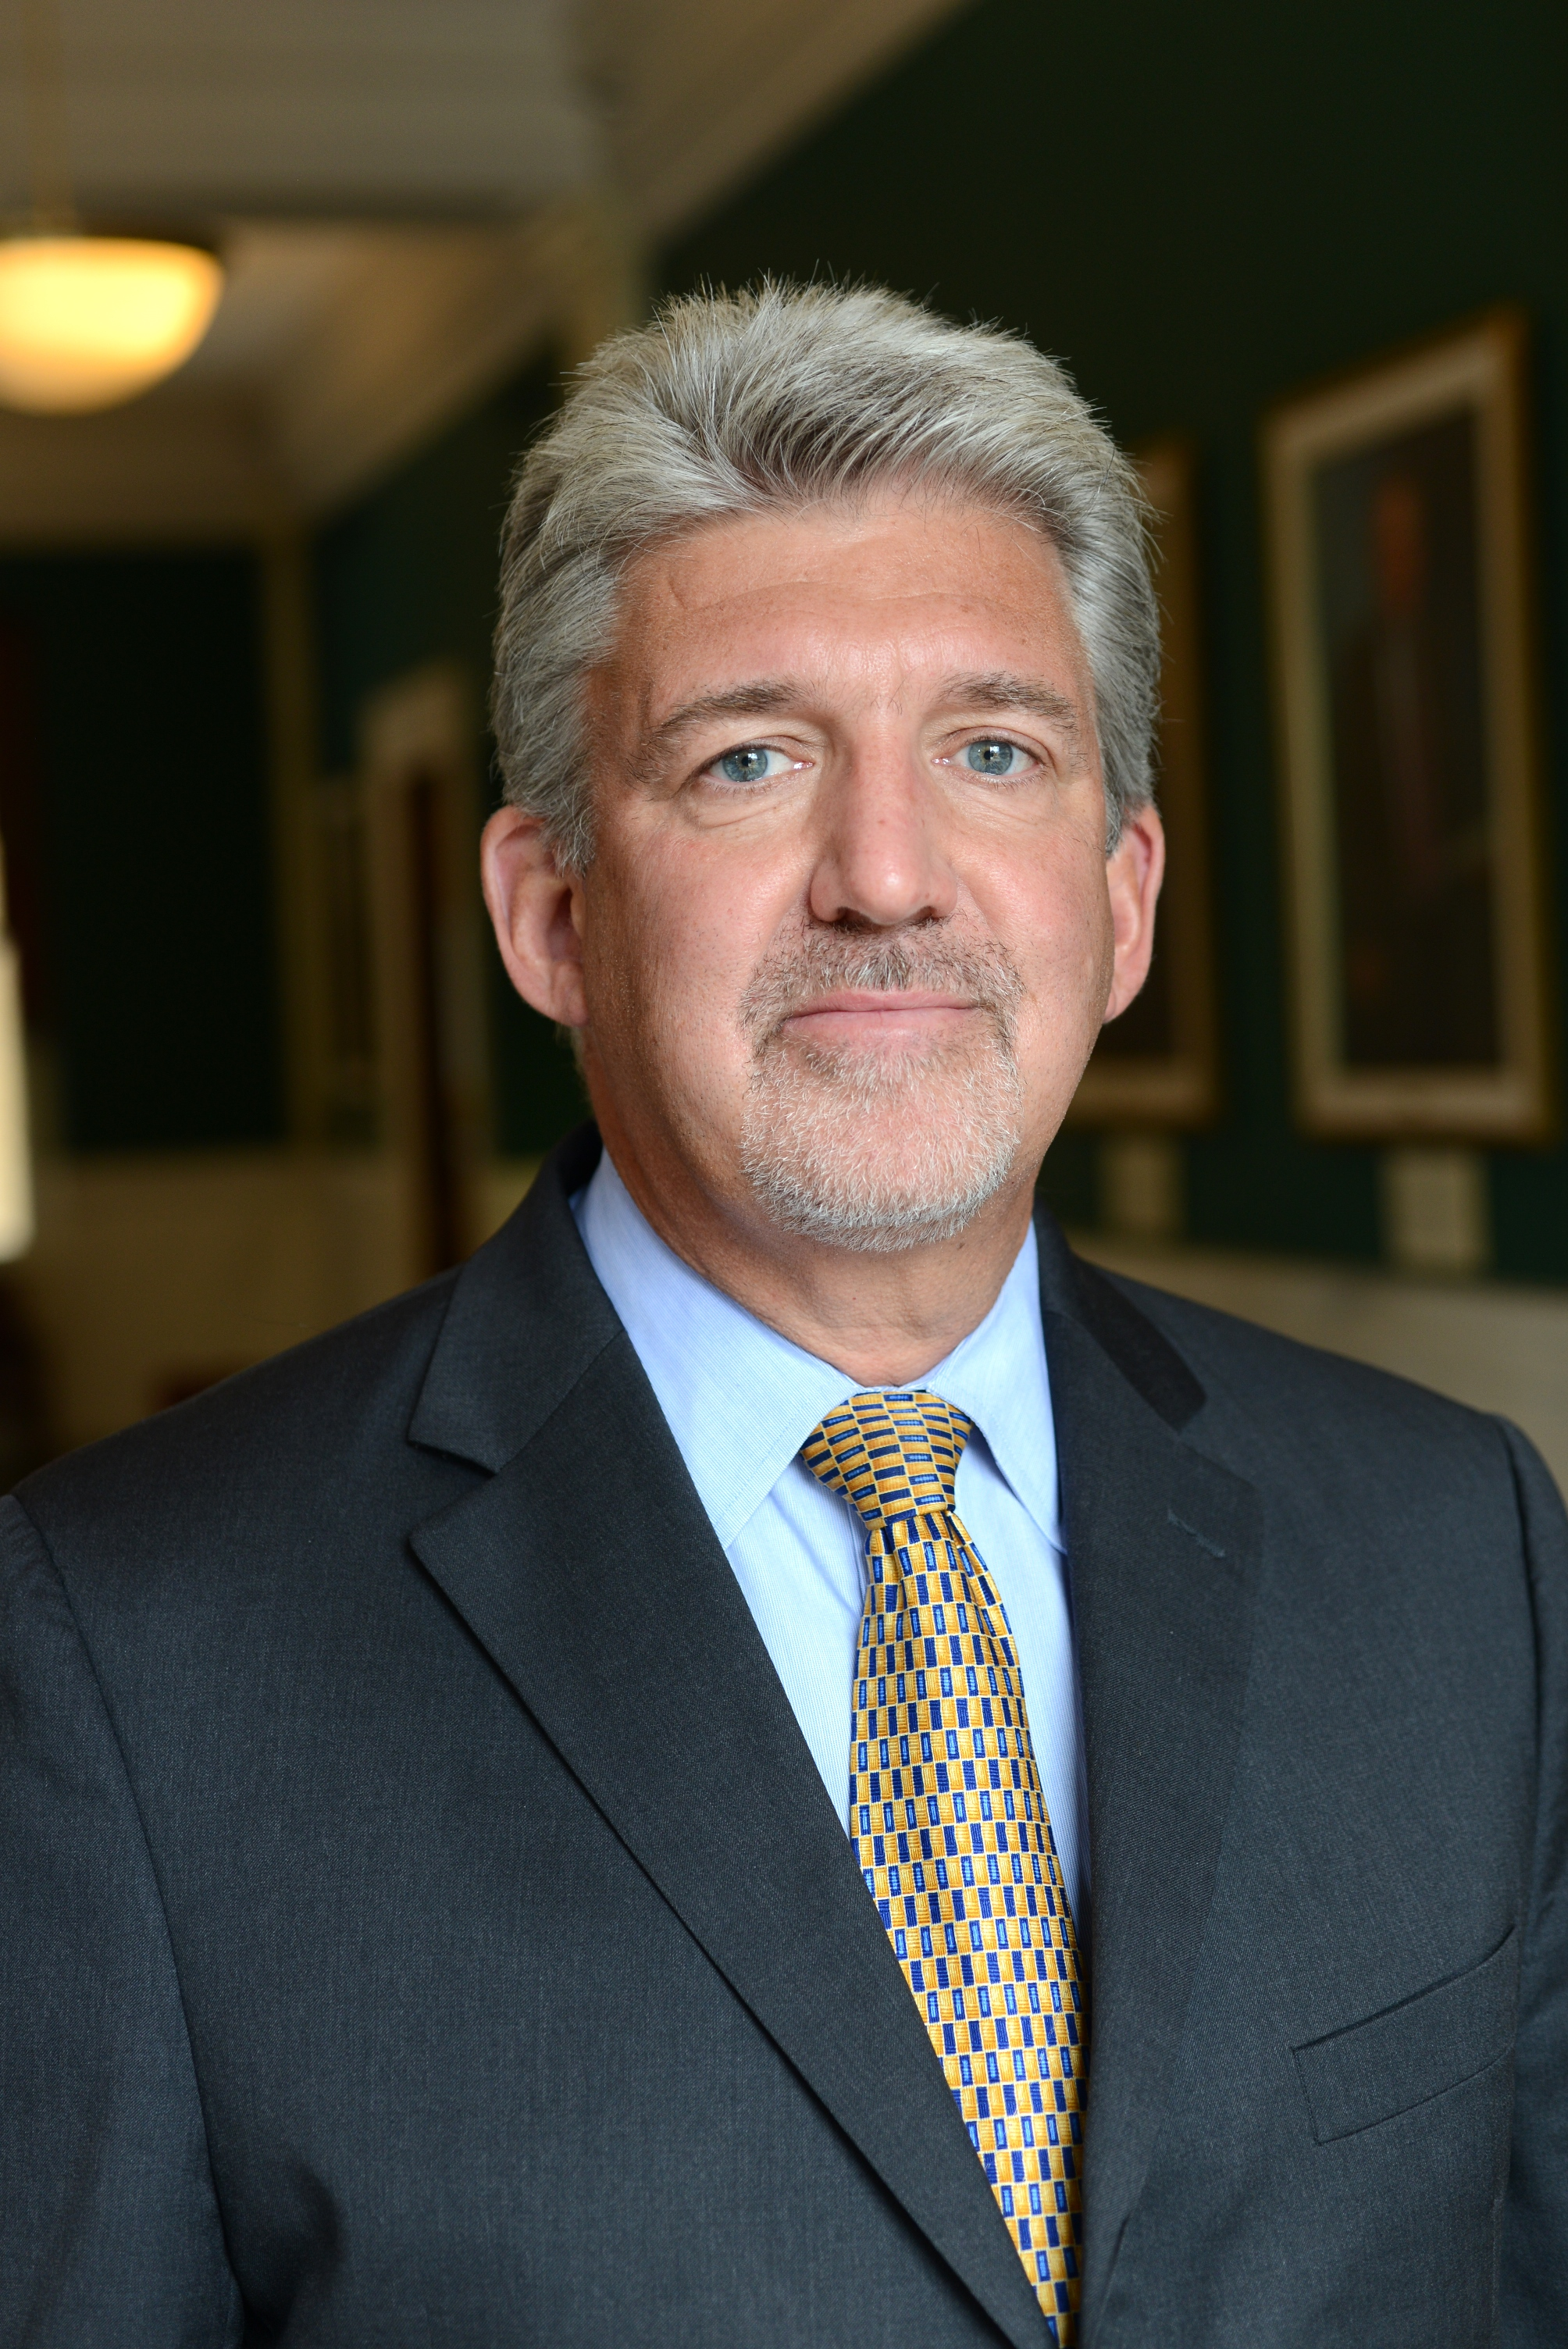 UofL executive vice president to go bald, for a cause